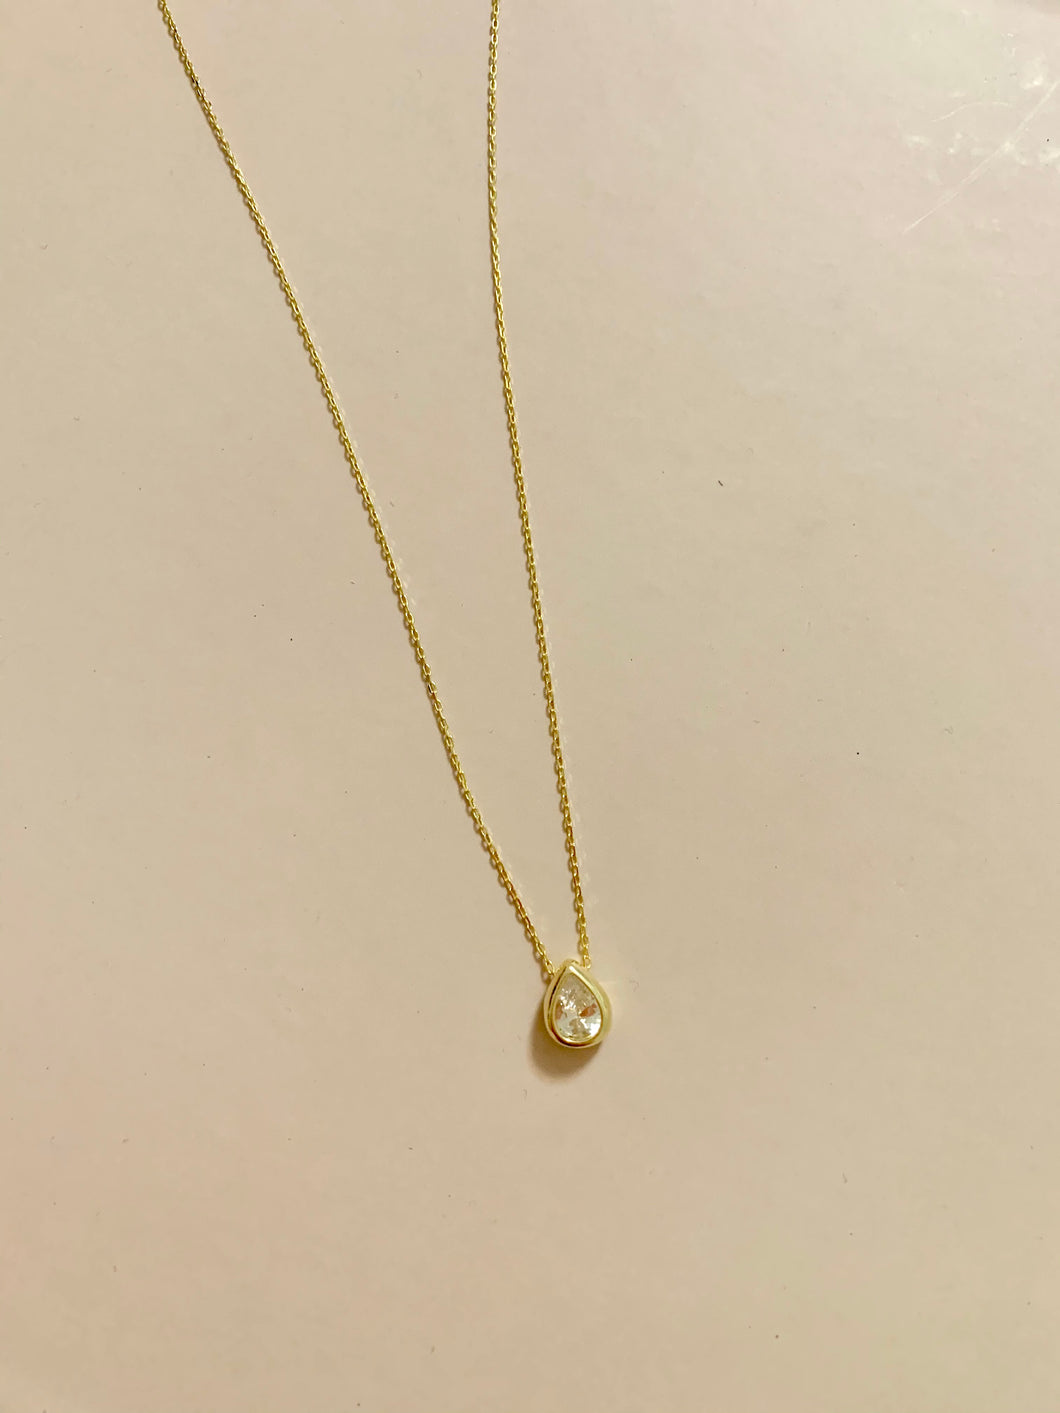 Teardrop Solitaire Necklace